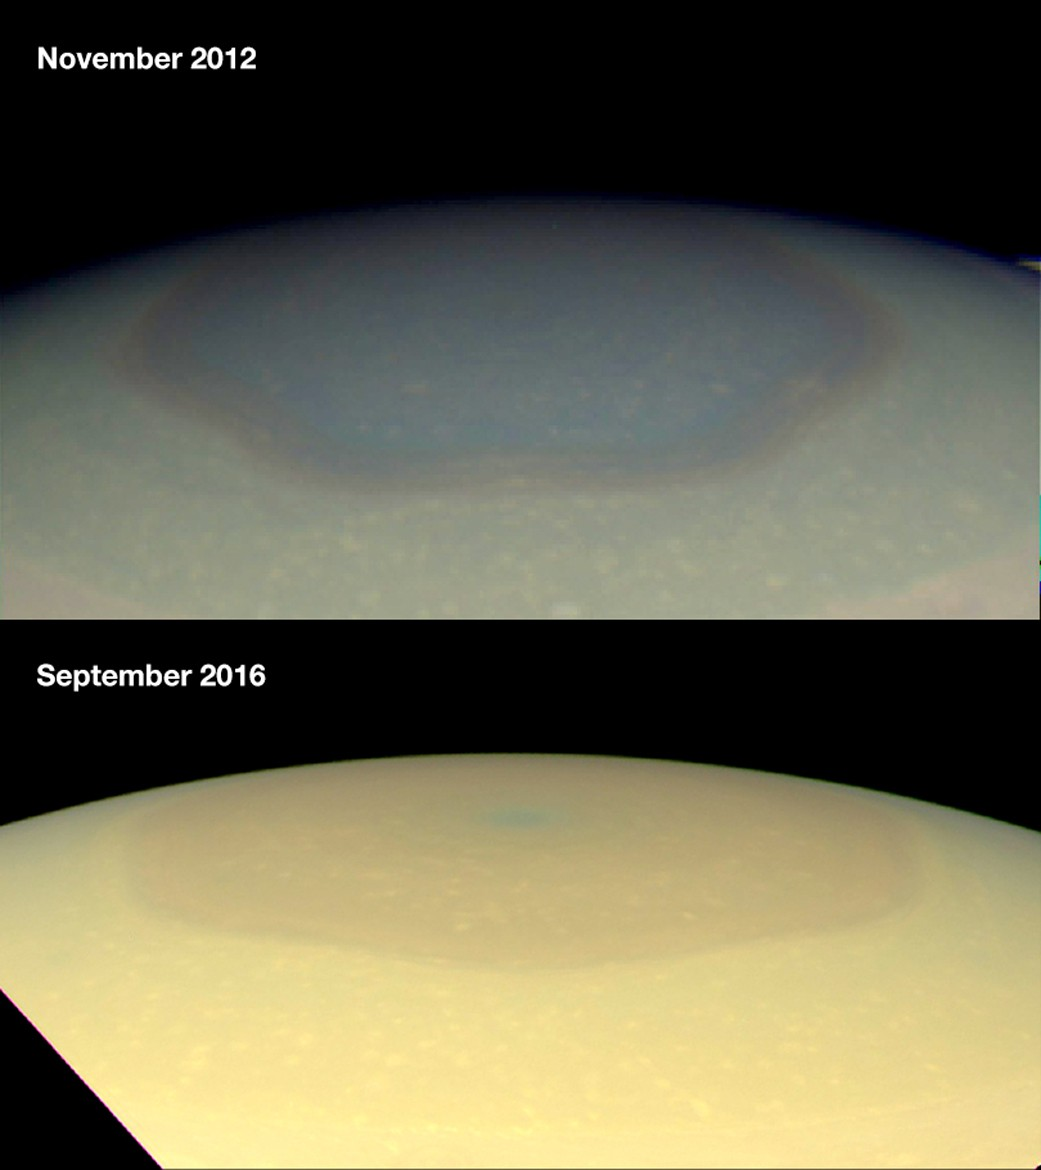 Astronomers Investigate Color Changes in Saturn's Atmospheric Hexagon